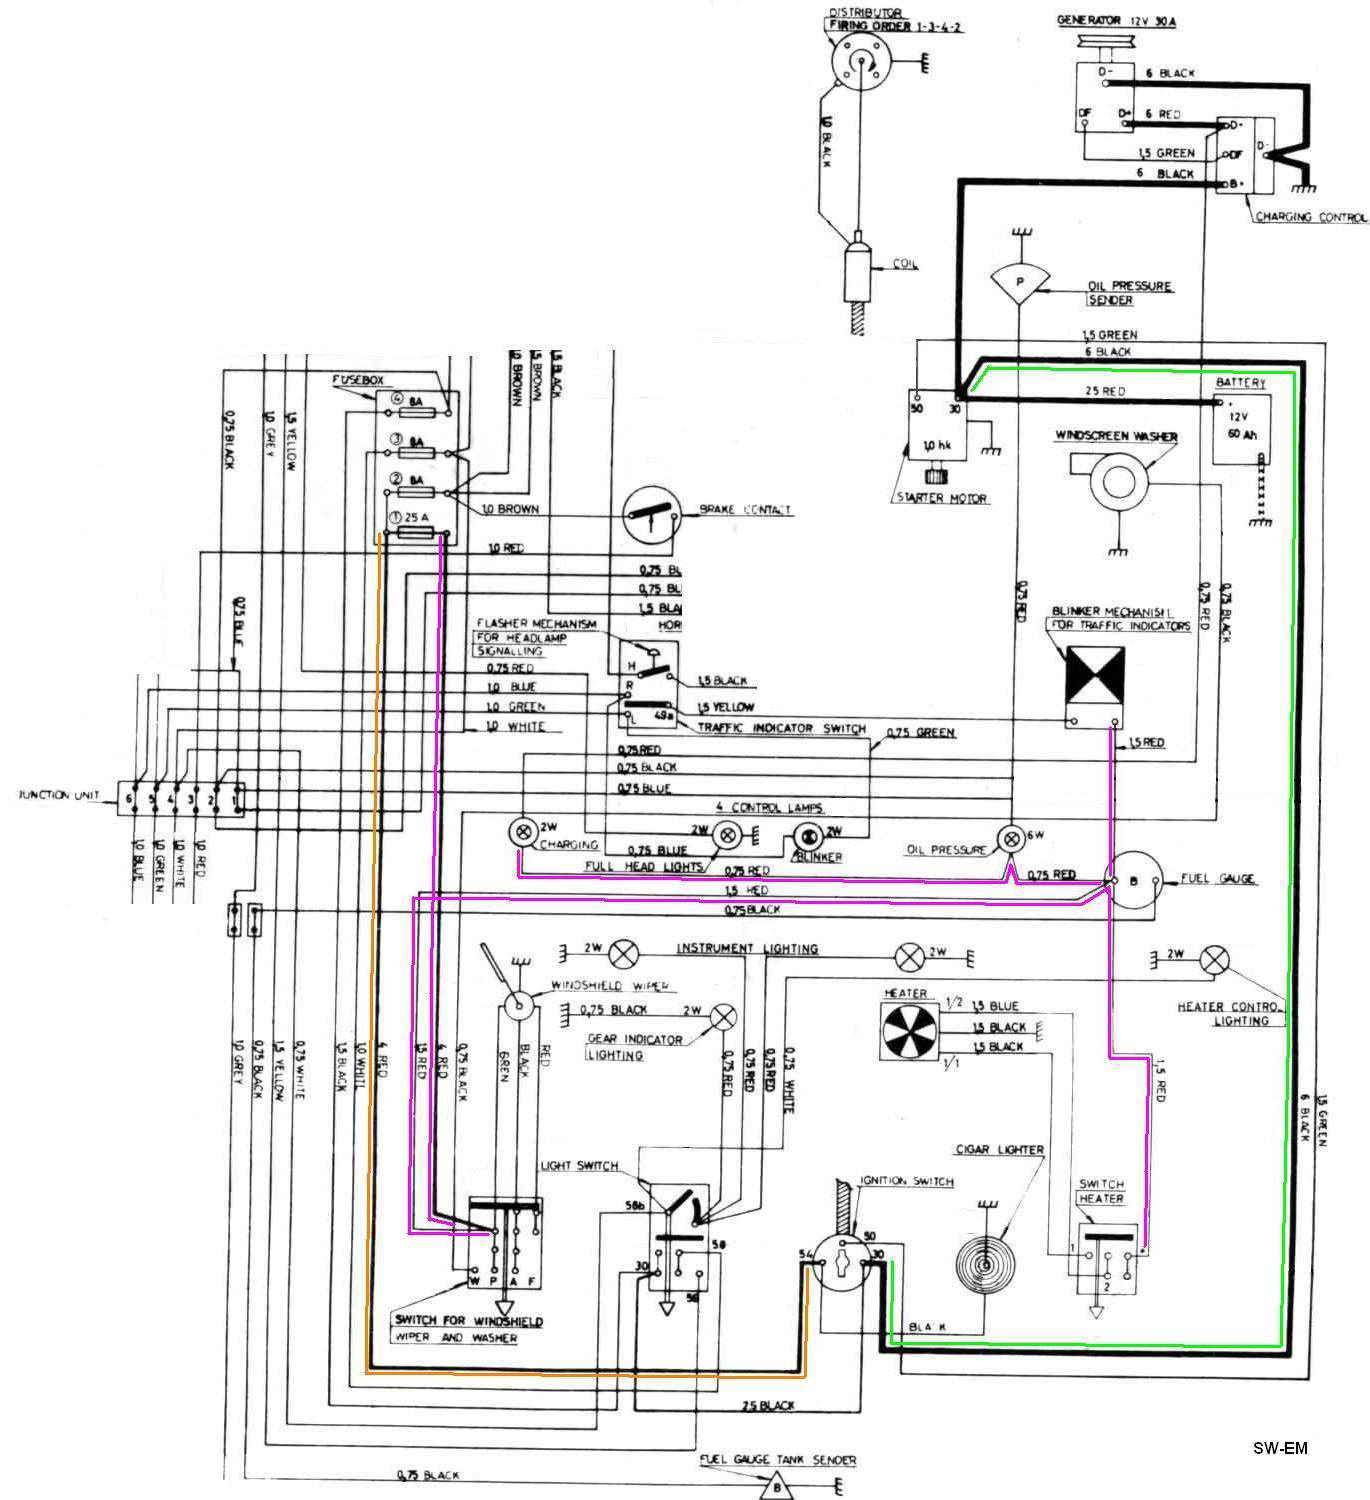 Volvo 740 Ignition Switch Wiring Diagram Basic Guide Wiring Diagram \u2022  GMC Truck Wiring Diagrams Volvo Truck Starter Wiring Diagram